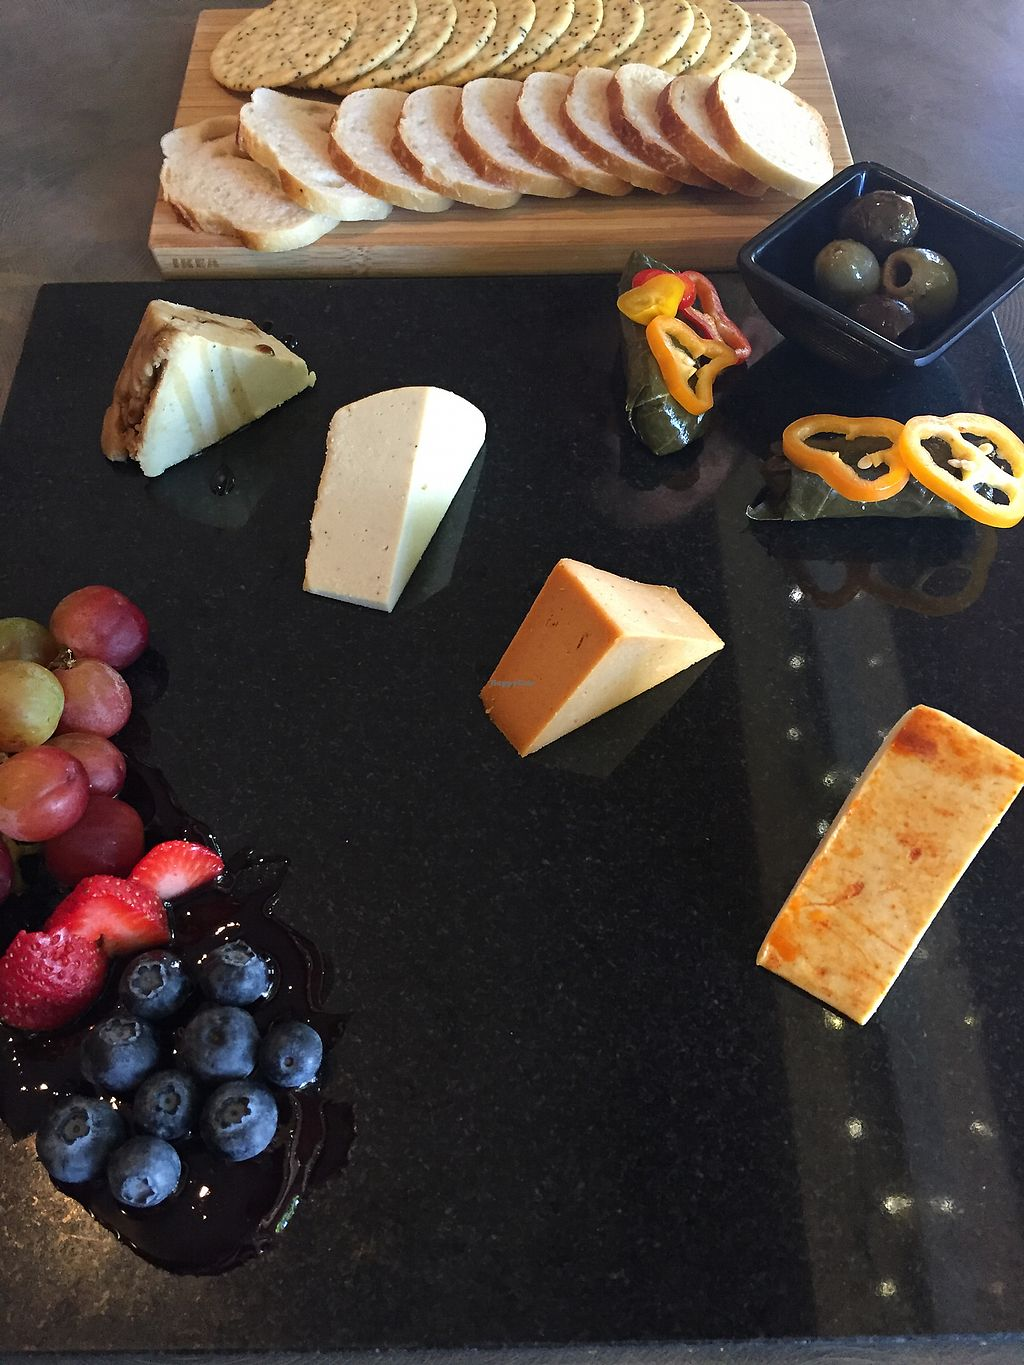 """Photo of Vtopia Cheese Shop and Deli  by <a href=""""/members/profile/TheVeganNarwhal"""">TheVeganNarwhal</a> <br/>Cheese platter <br/> February 12, 2018  - <a href='/contact/abuse/image/59803/358241'>Report</a>"""